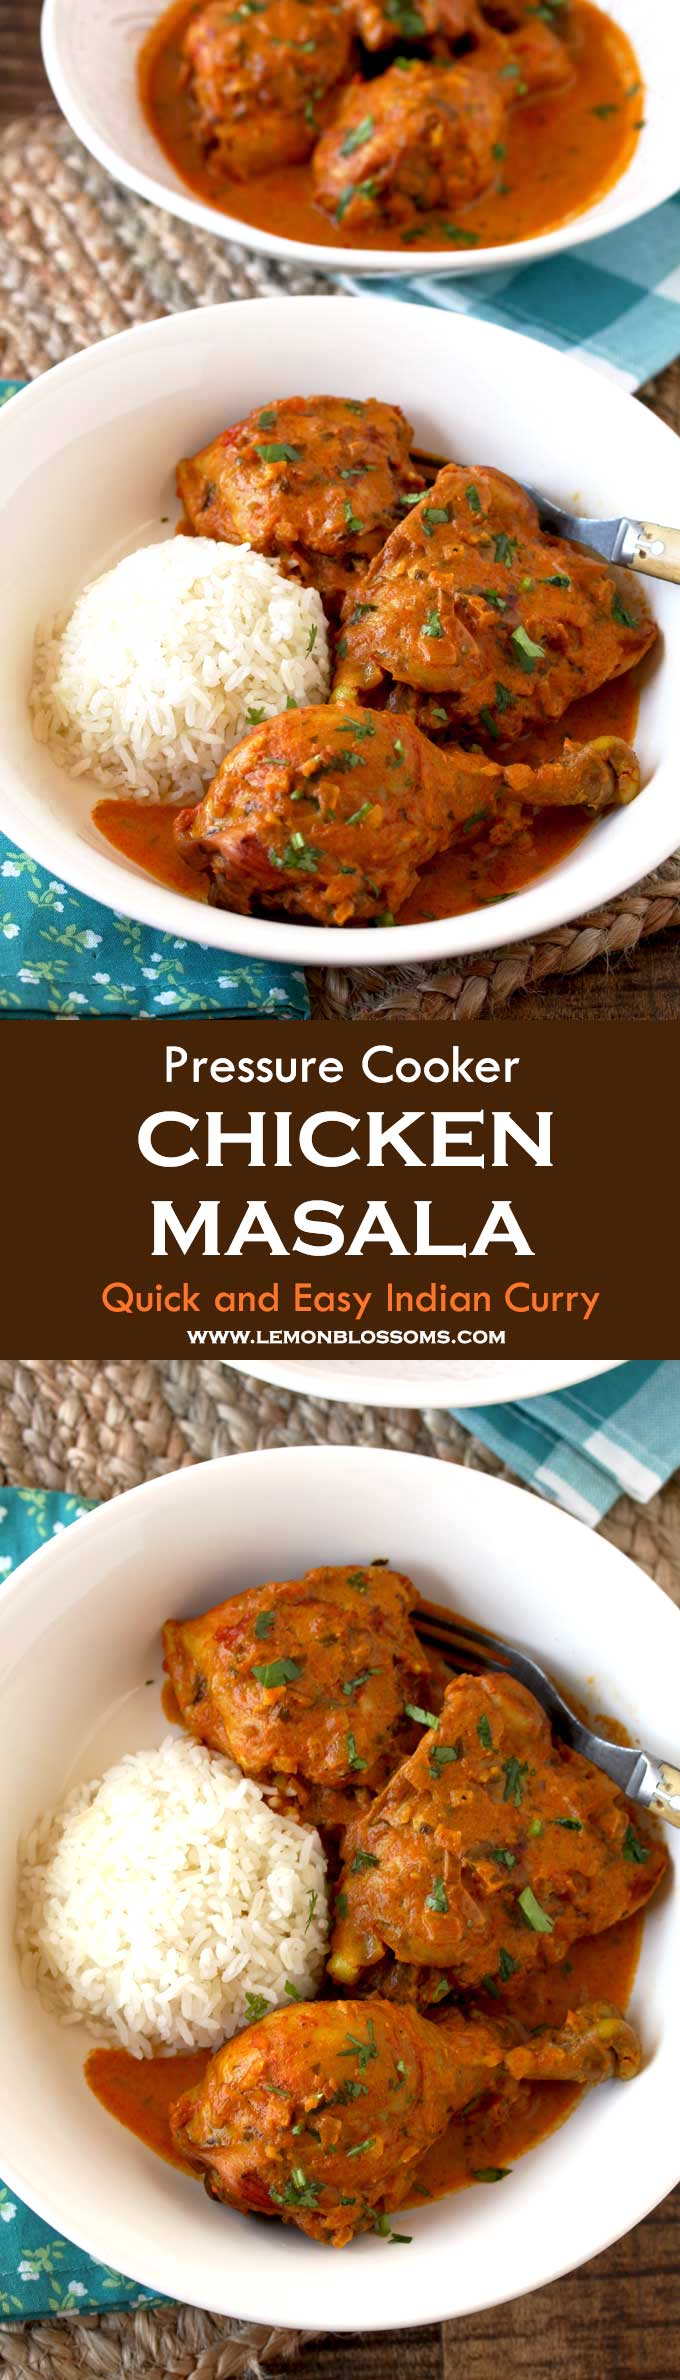 This Indian inspired Chicken Masala has the right balance of spices and creaminess and only takes 30 minutes to make! Chicken pieces are cooked in a flavorful tomato based sauce with spices you already have in your kitchen. This easy full flavored homemade curry recipe is one everyone will love! #Instantpot #chicken #Masala #Curry #IndianFood